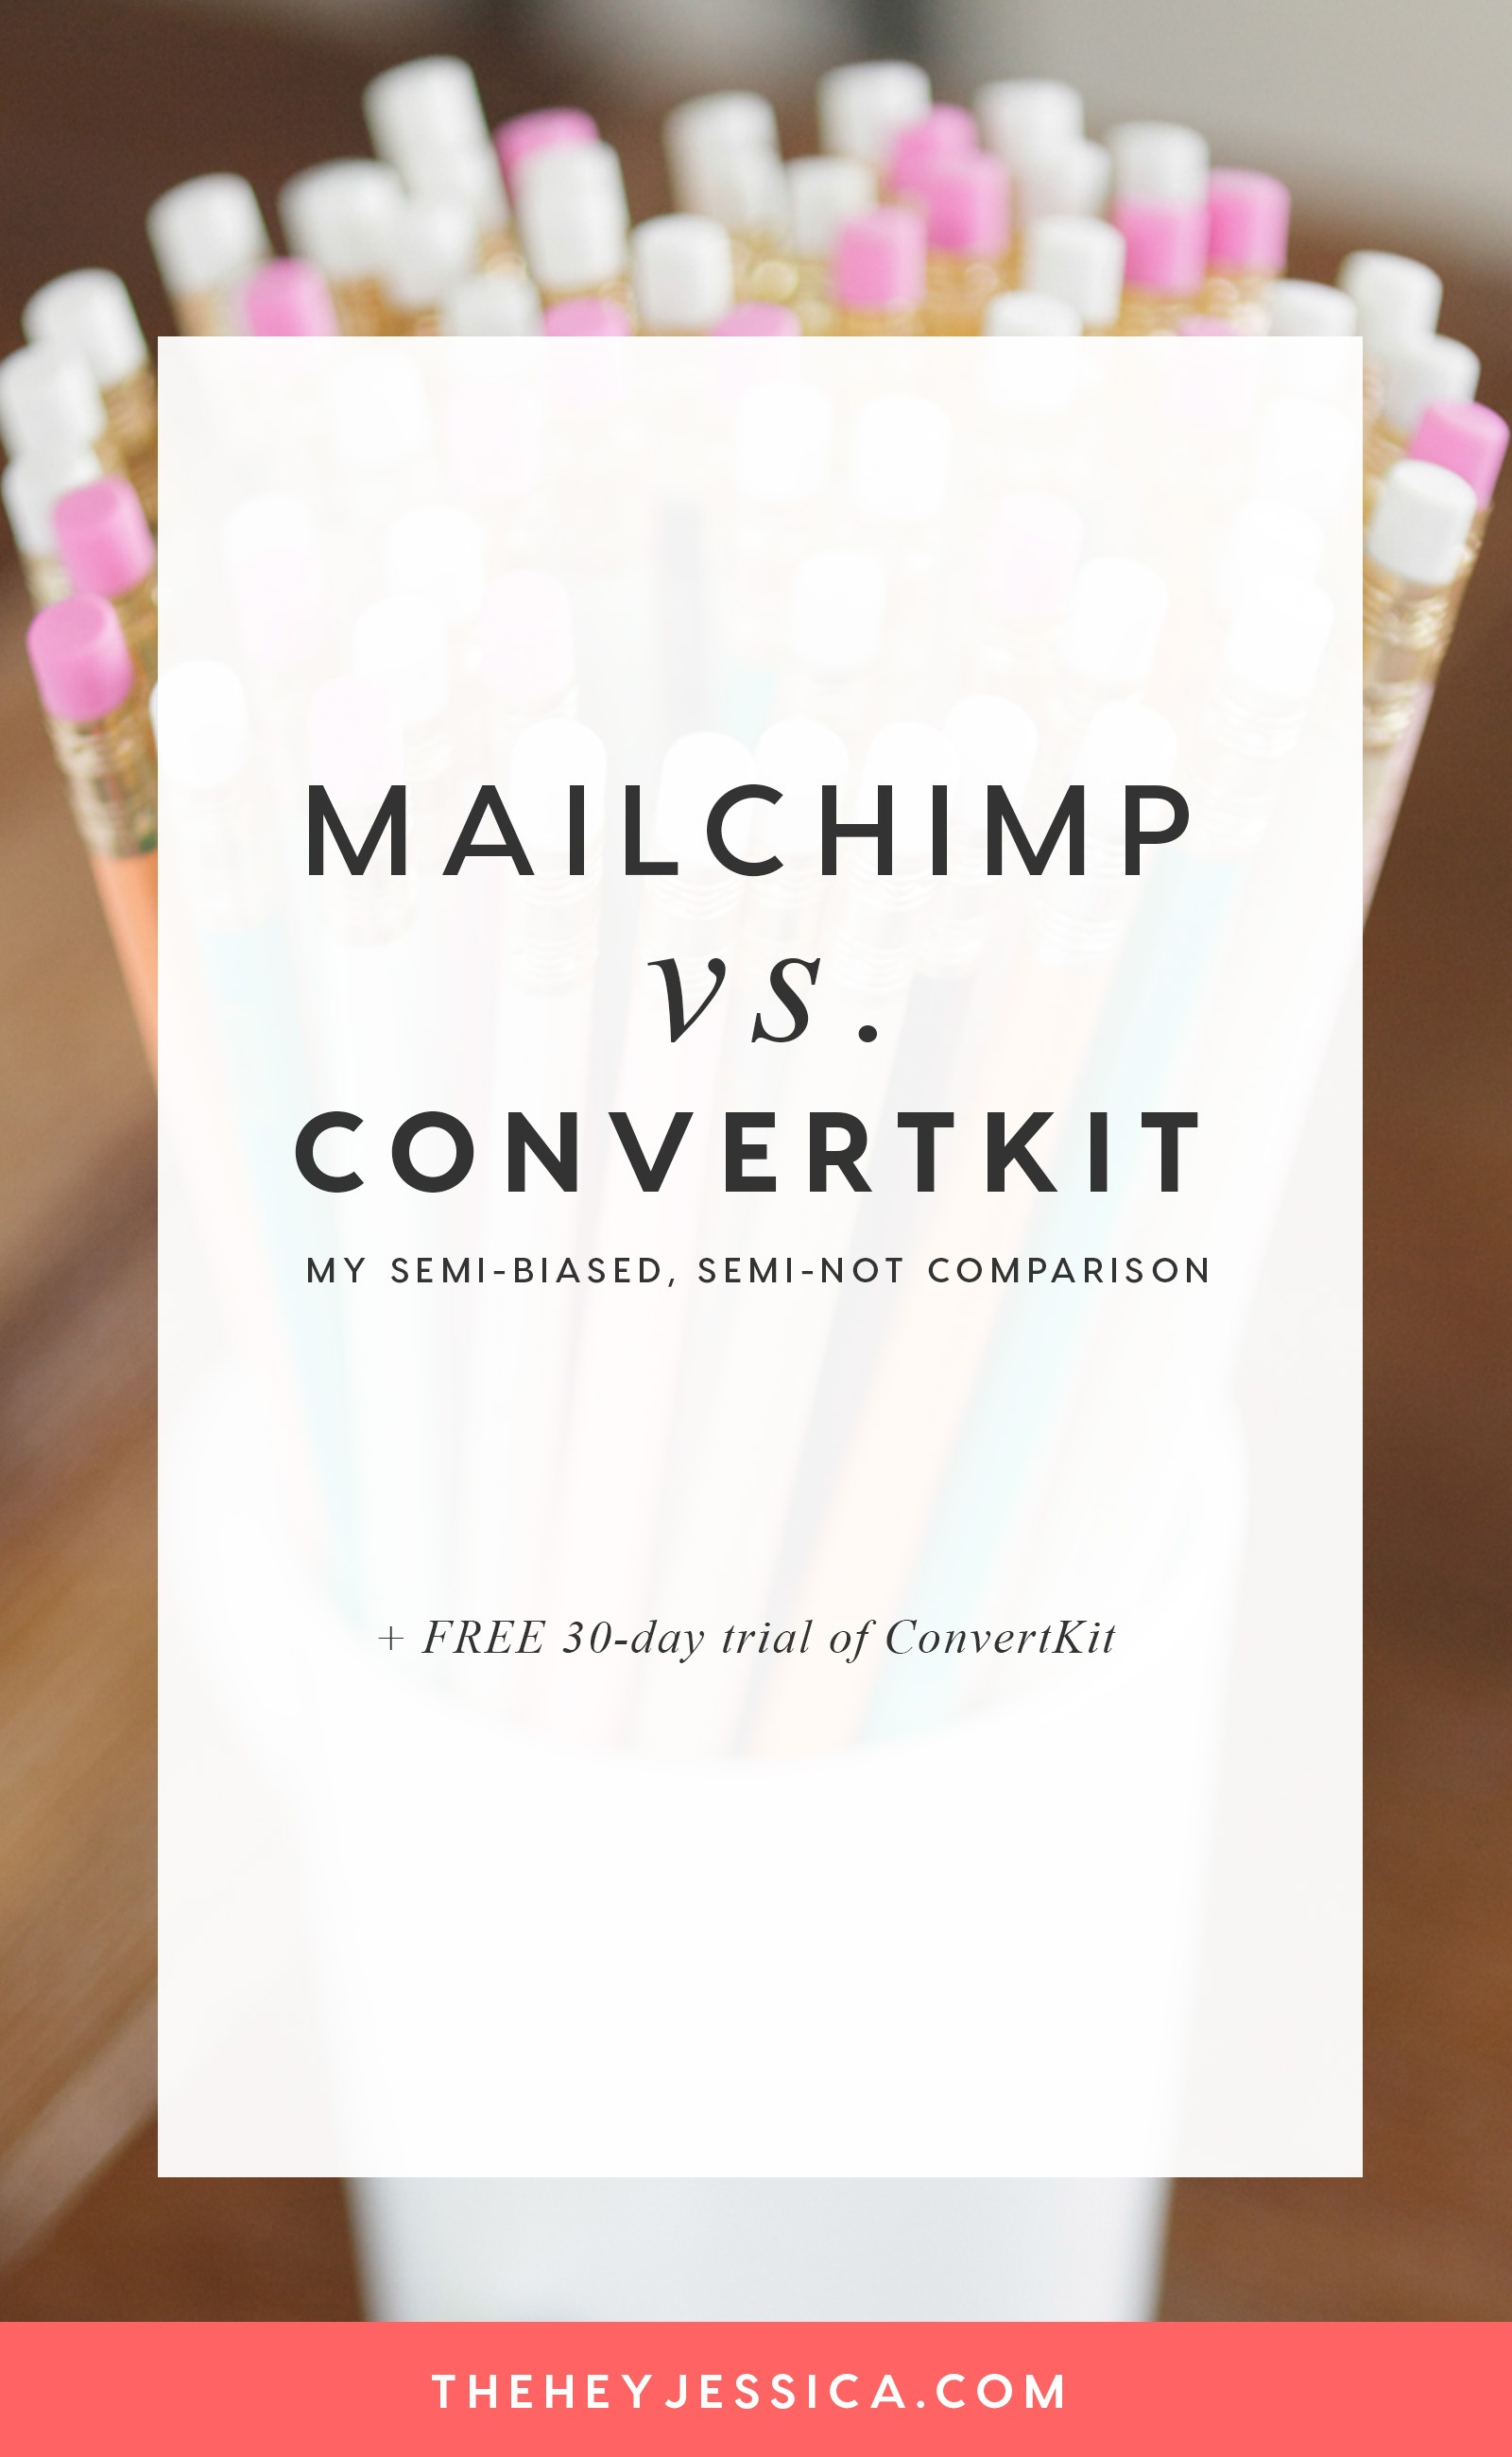 Convertkit Vs Mailchimp - The Facts